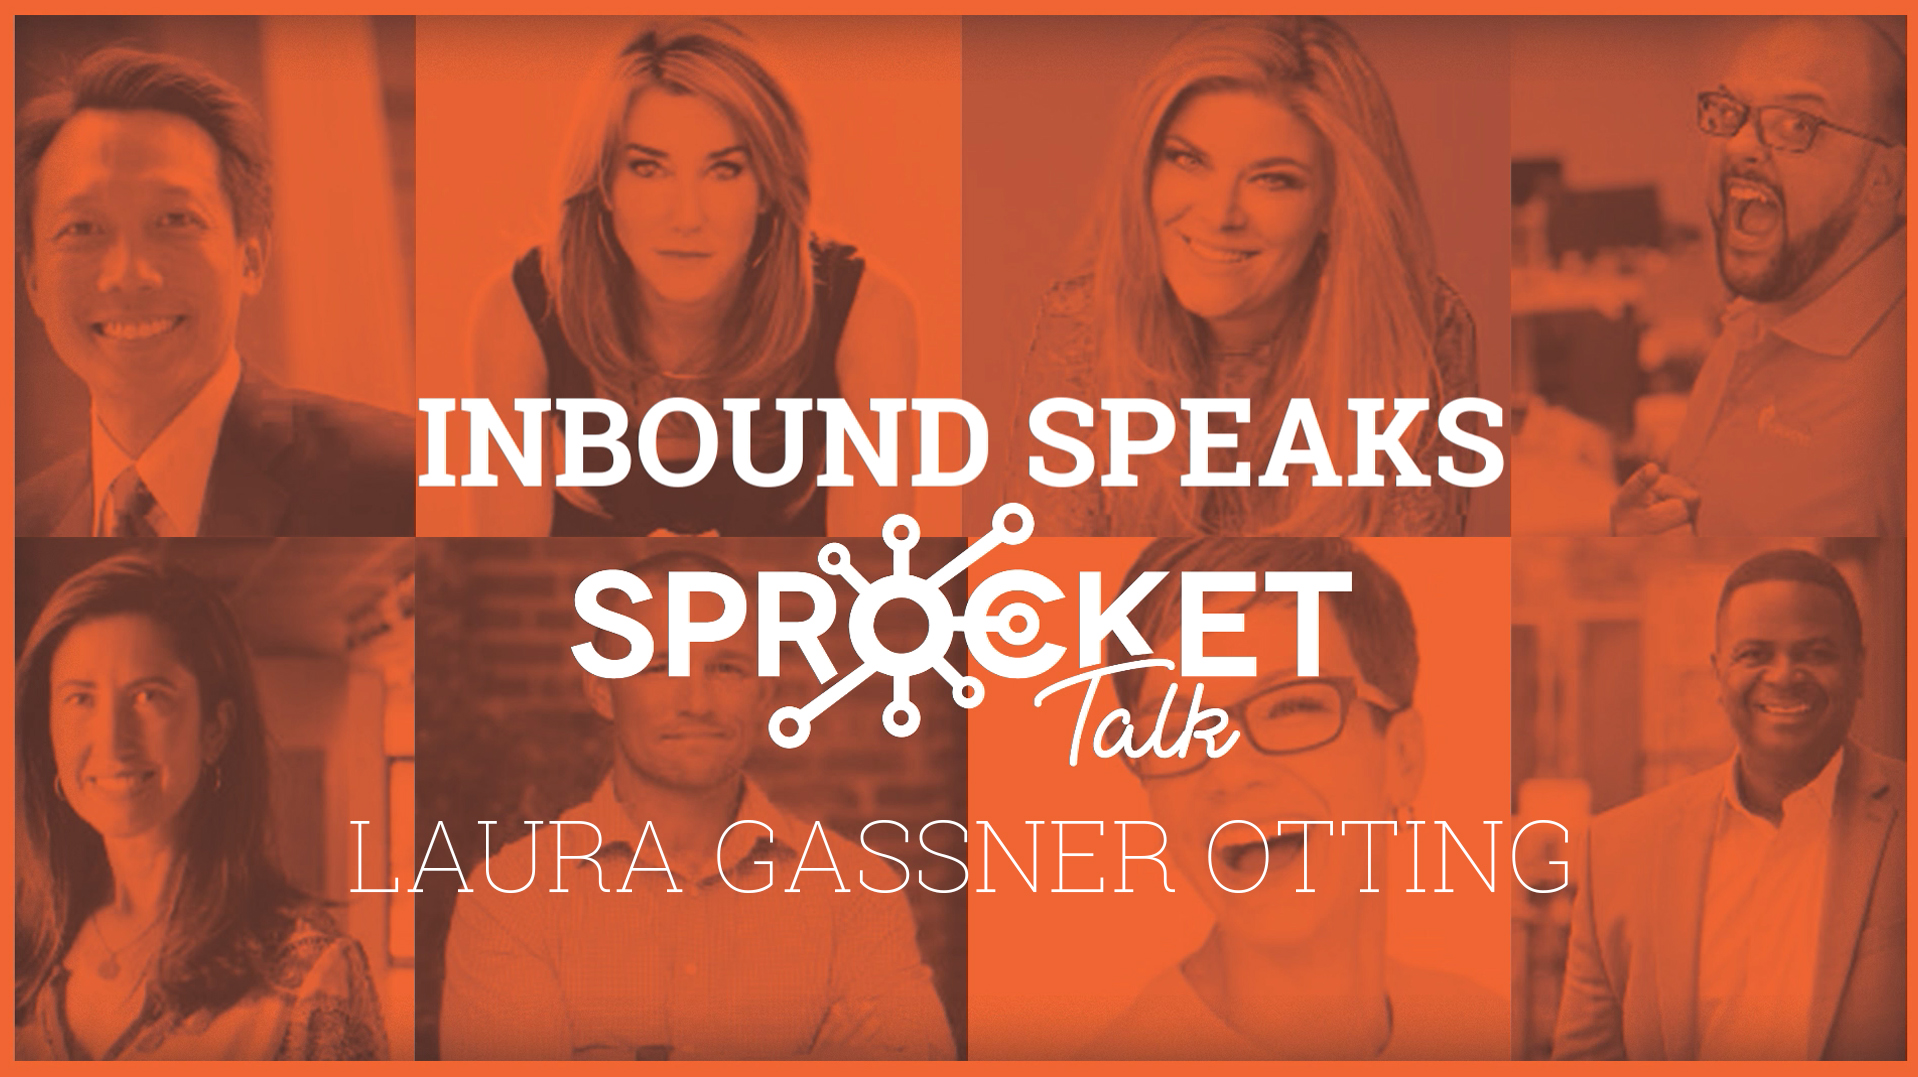 Laura Gassner Otting The Limitless Leader: How to Get to the Bottom of Building Up Your Team Inbound 19 Speaker